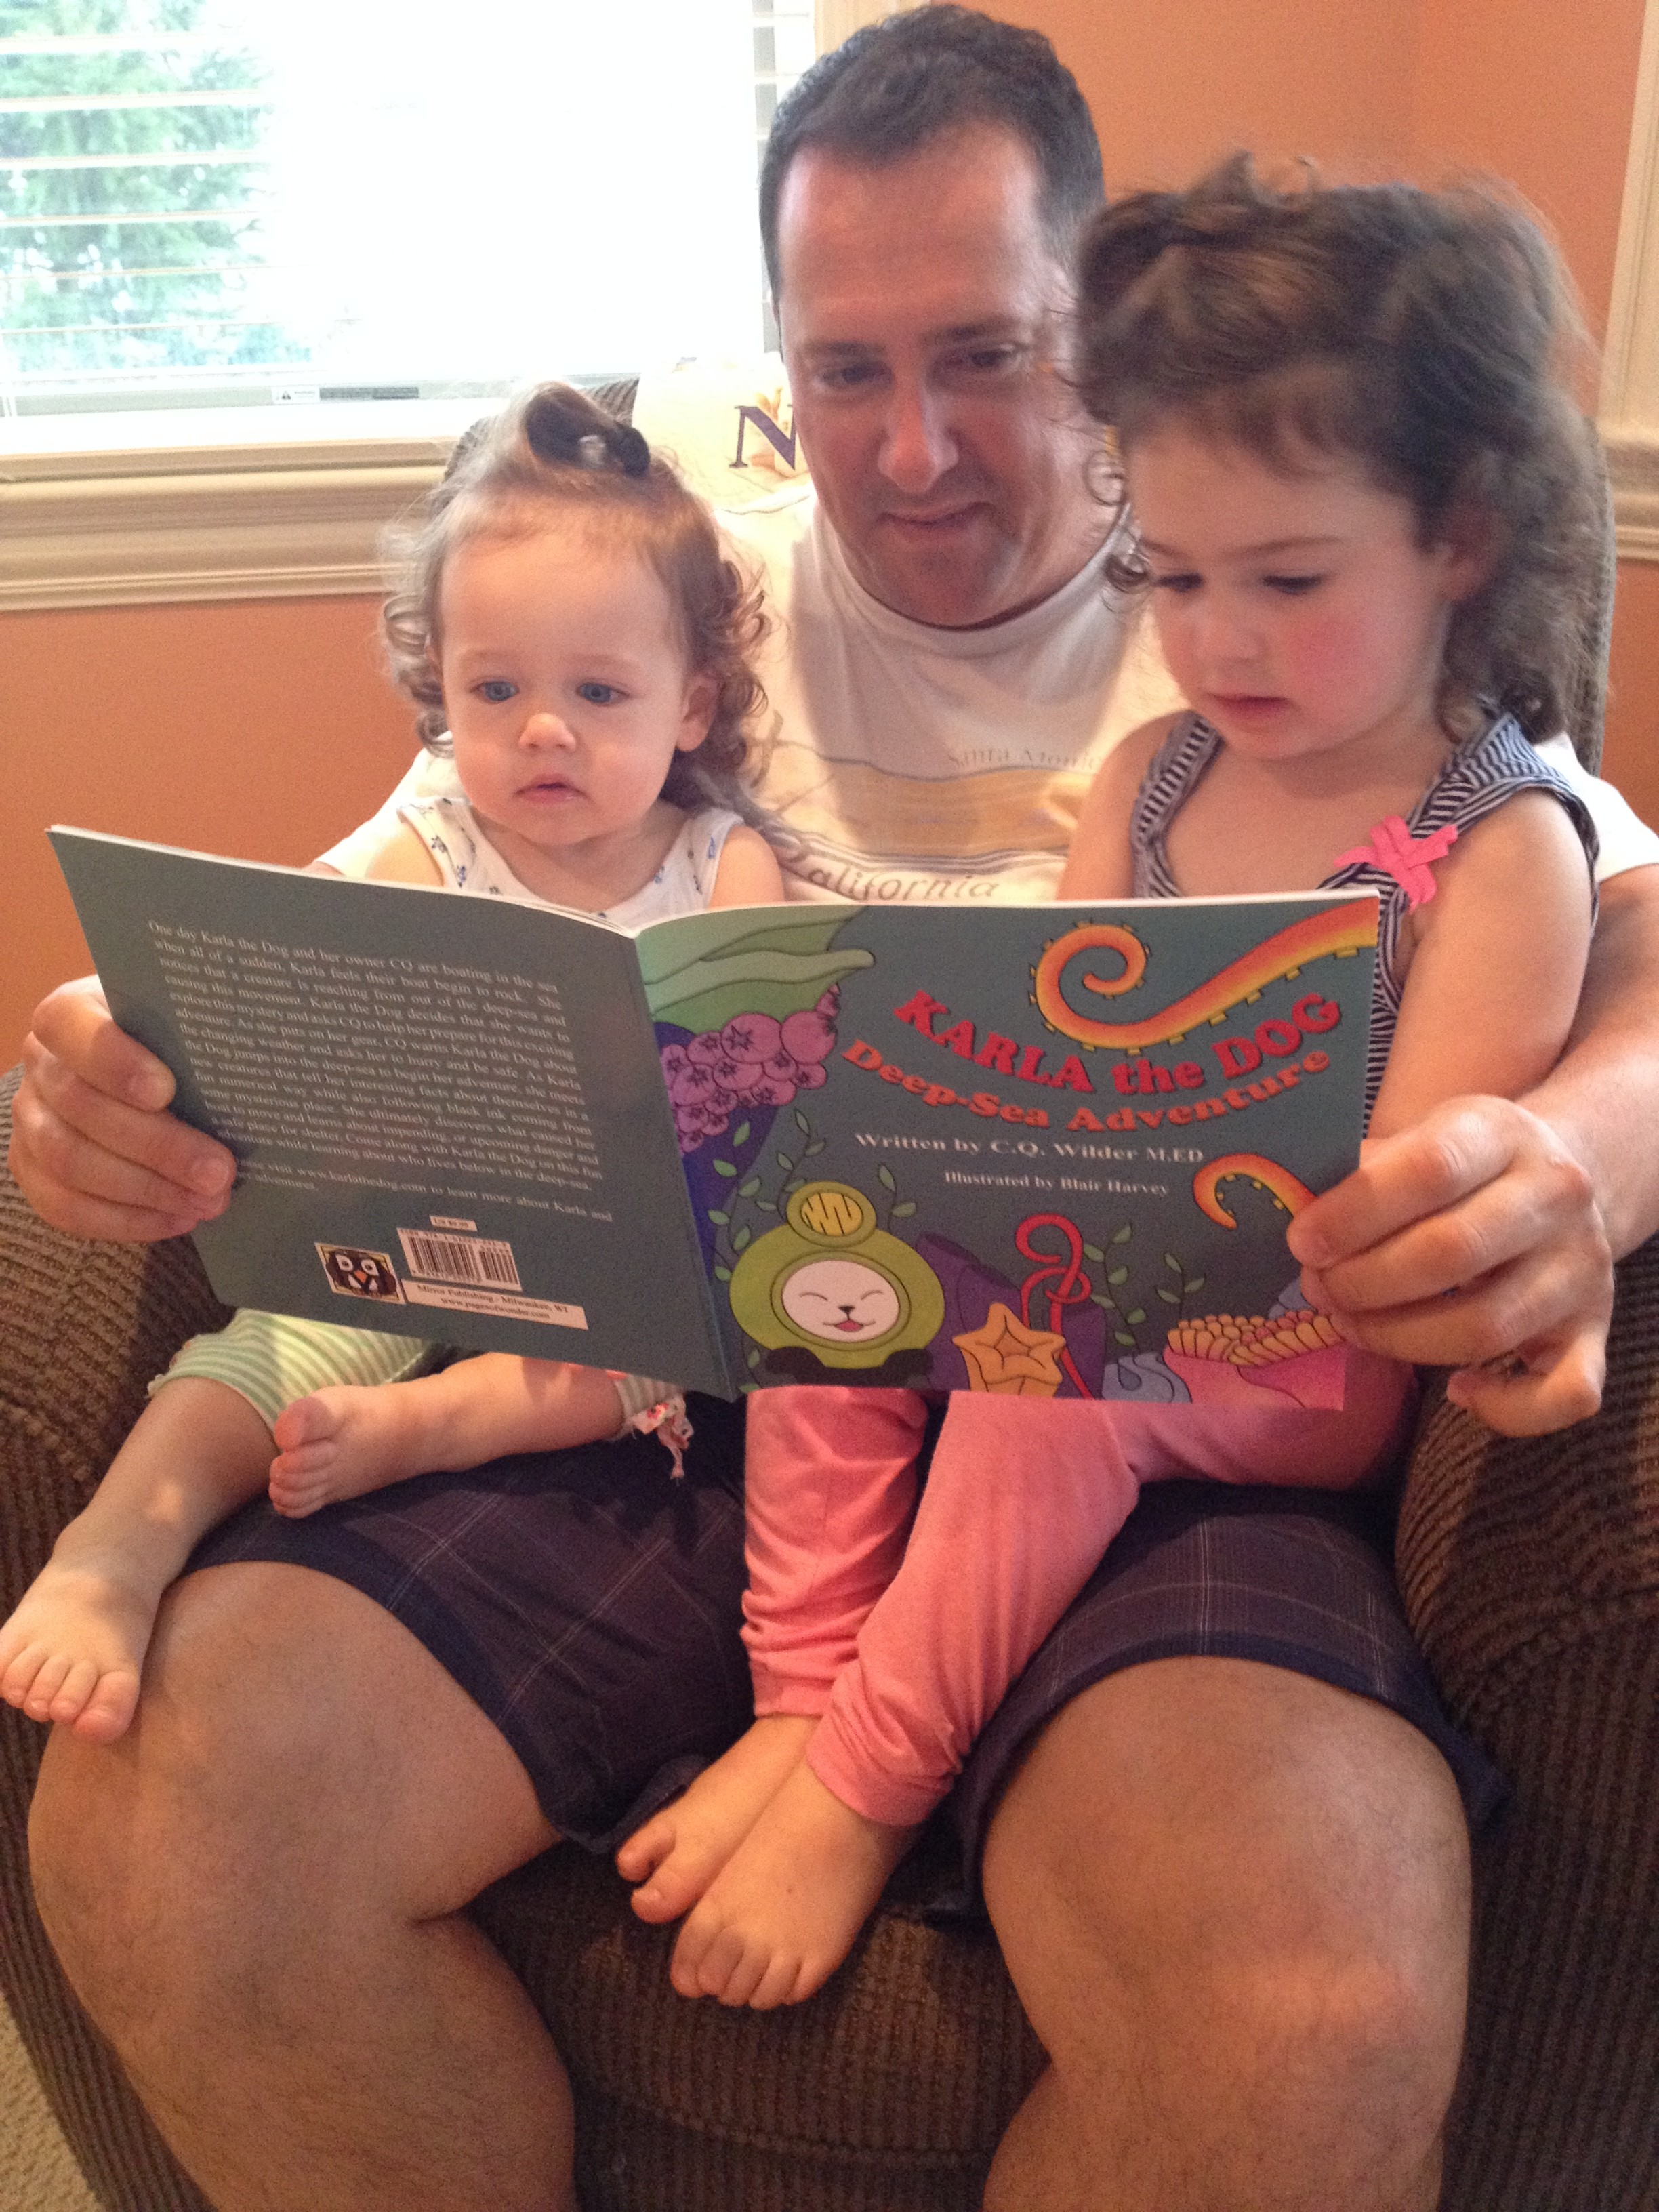 Savannah and Brooklynn and reading their Karla book with their father!